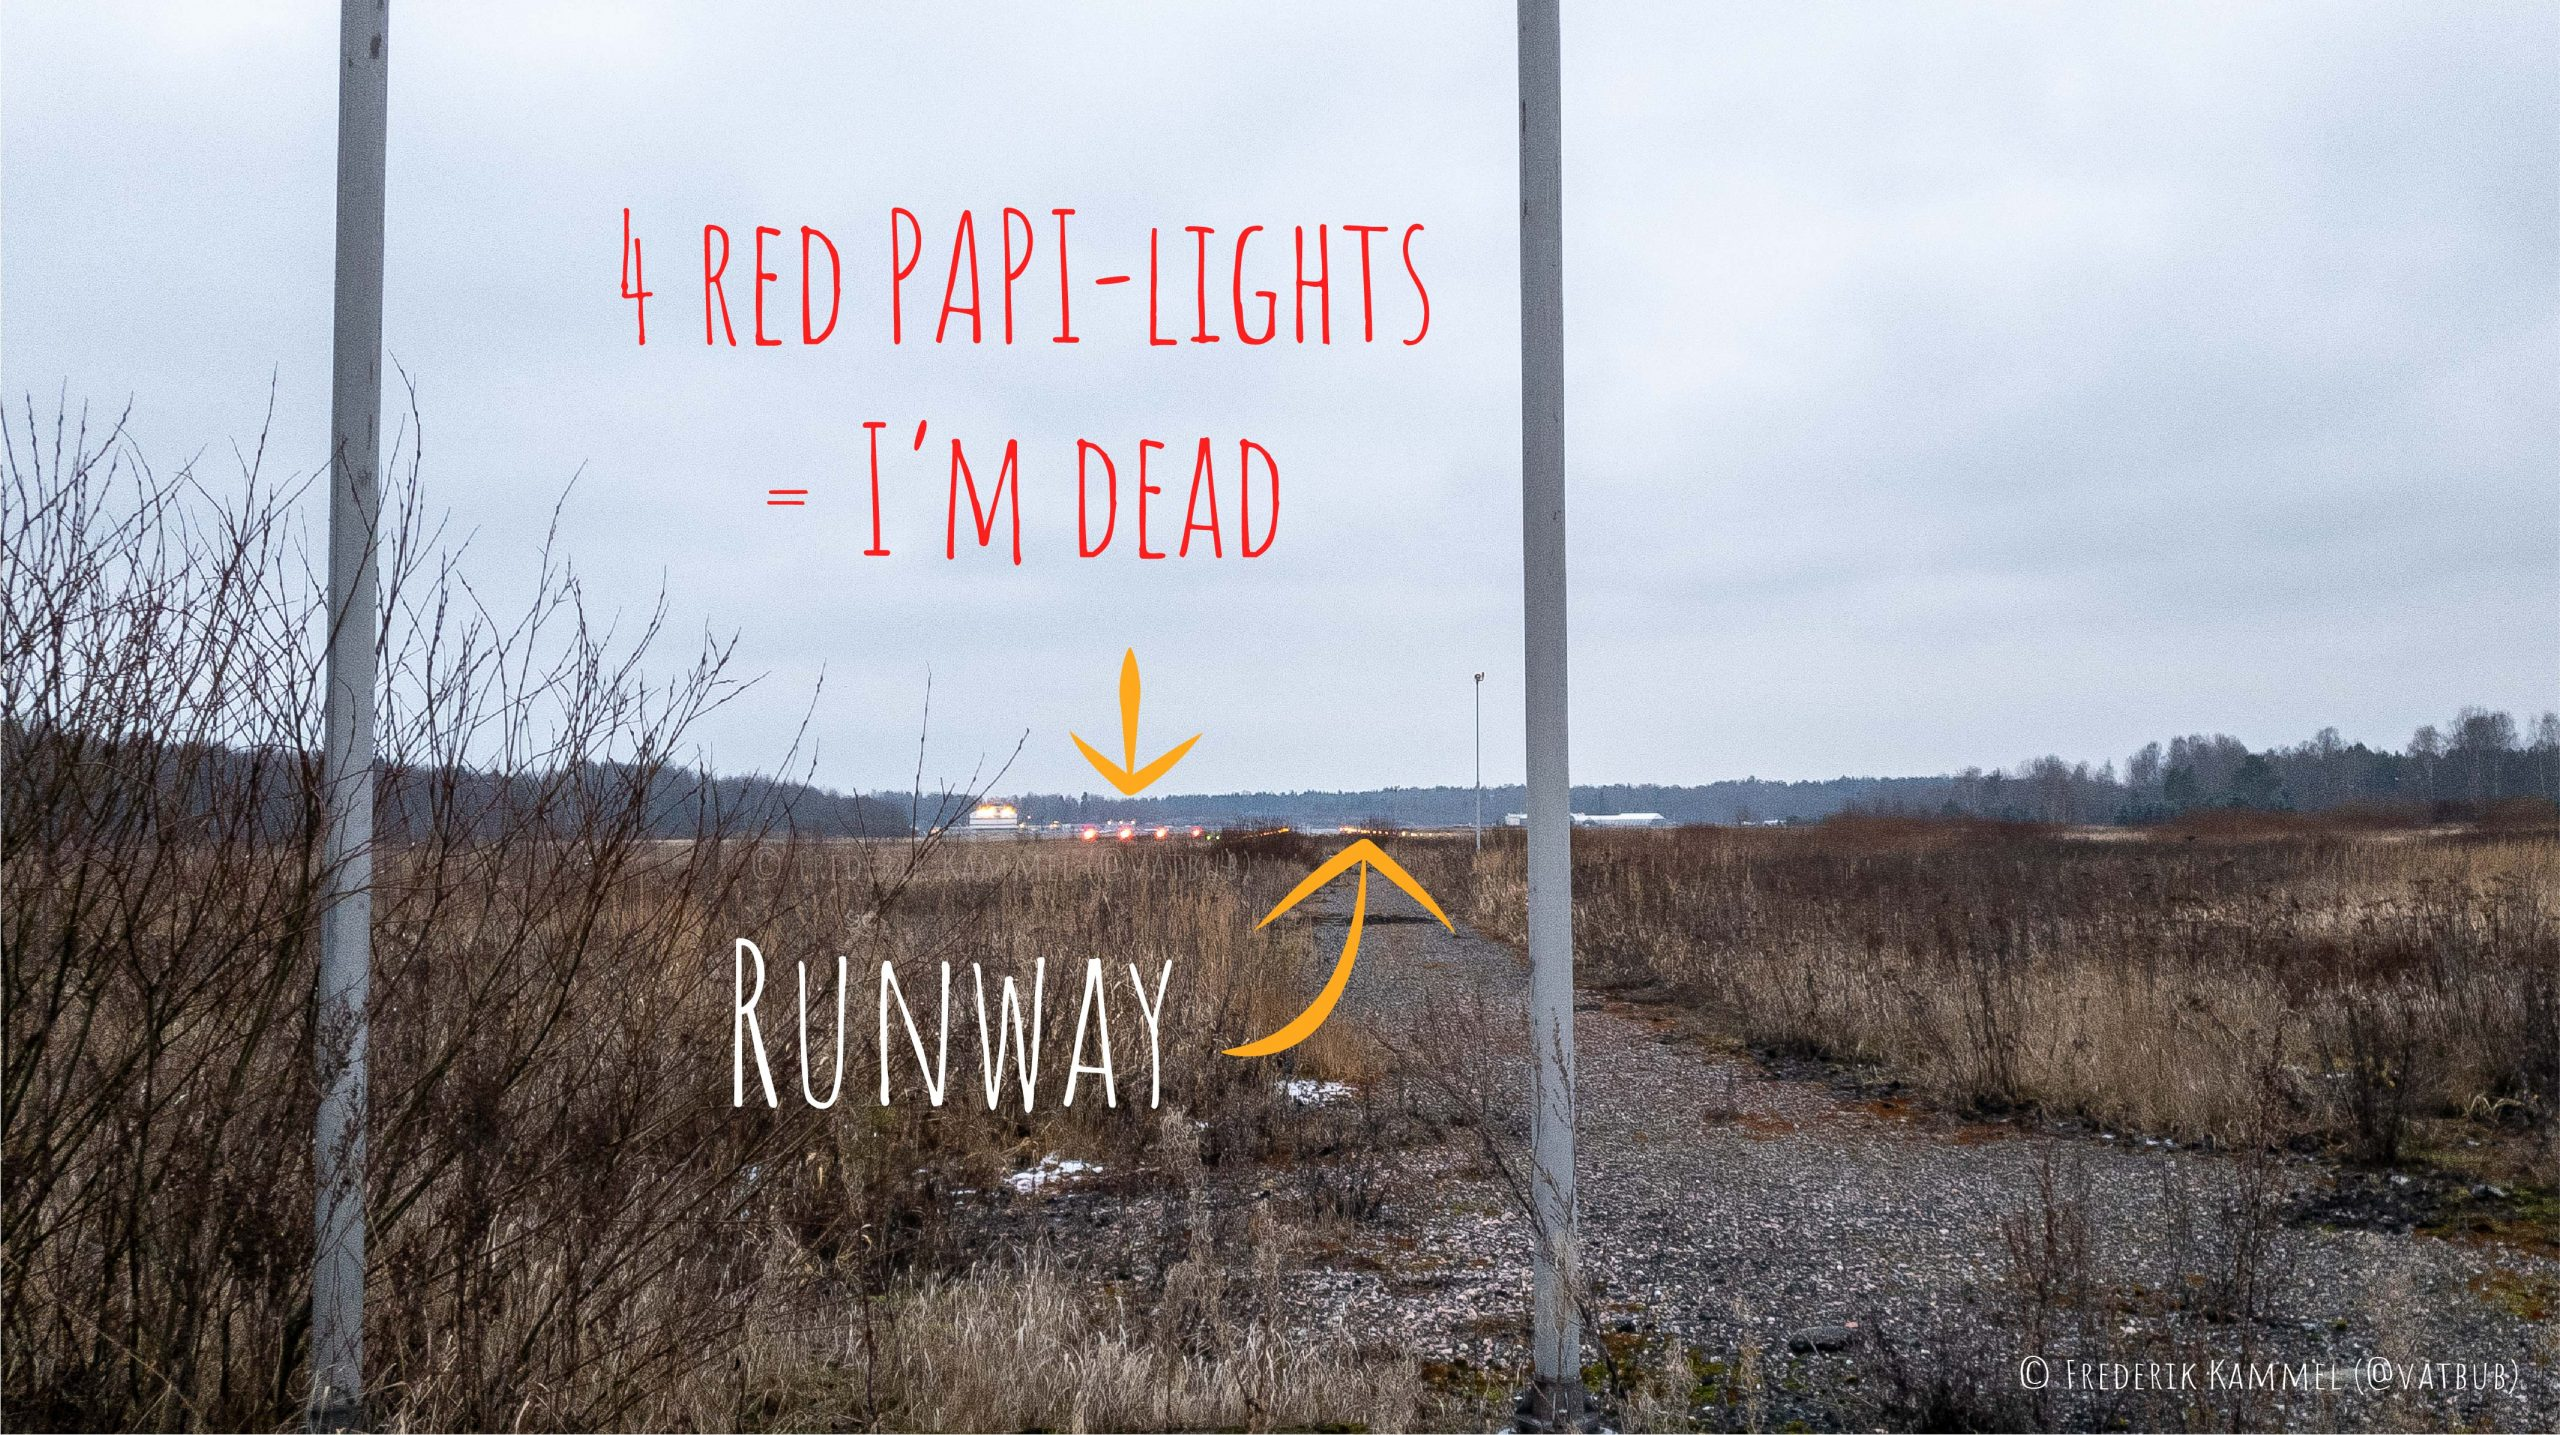 PAPI lights and runway of the airfield in Malmi. Text in the image: Runway; 4 red PAPI-lights = I'm dead